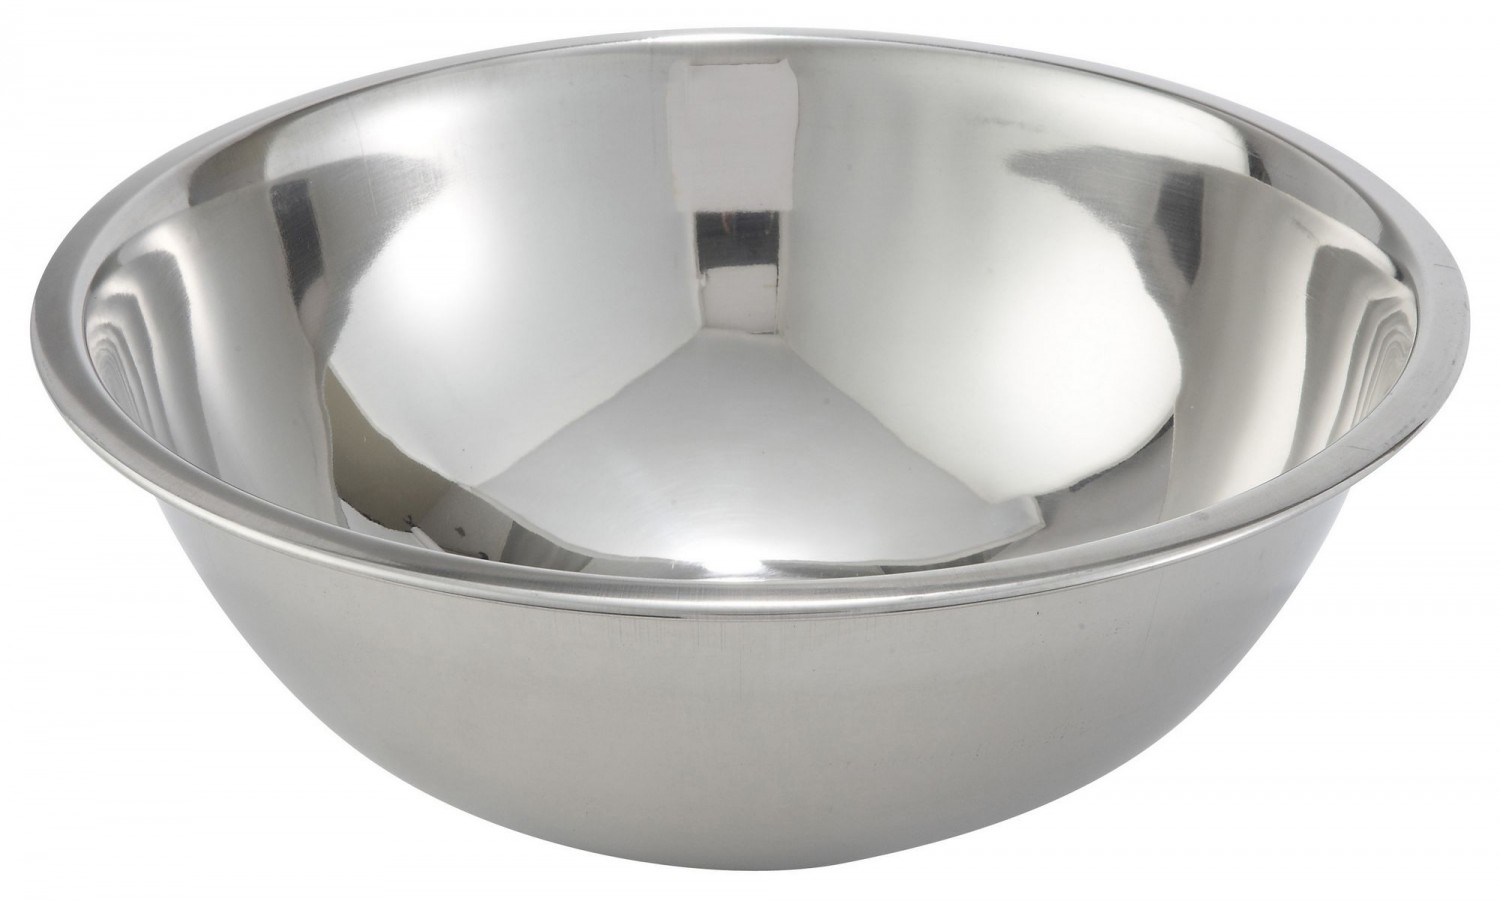 Winco MXB-800Q Stainless Steel Economy Mixing Bowl 8 Qt.